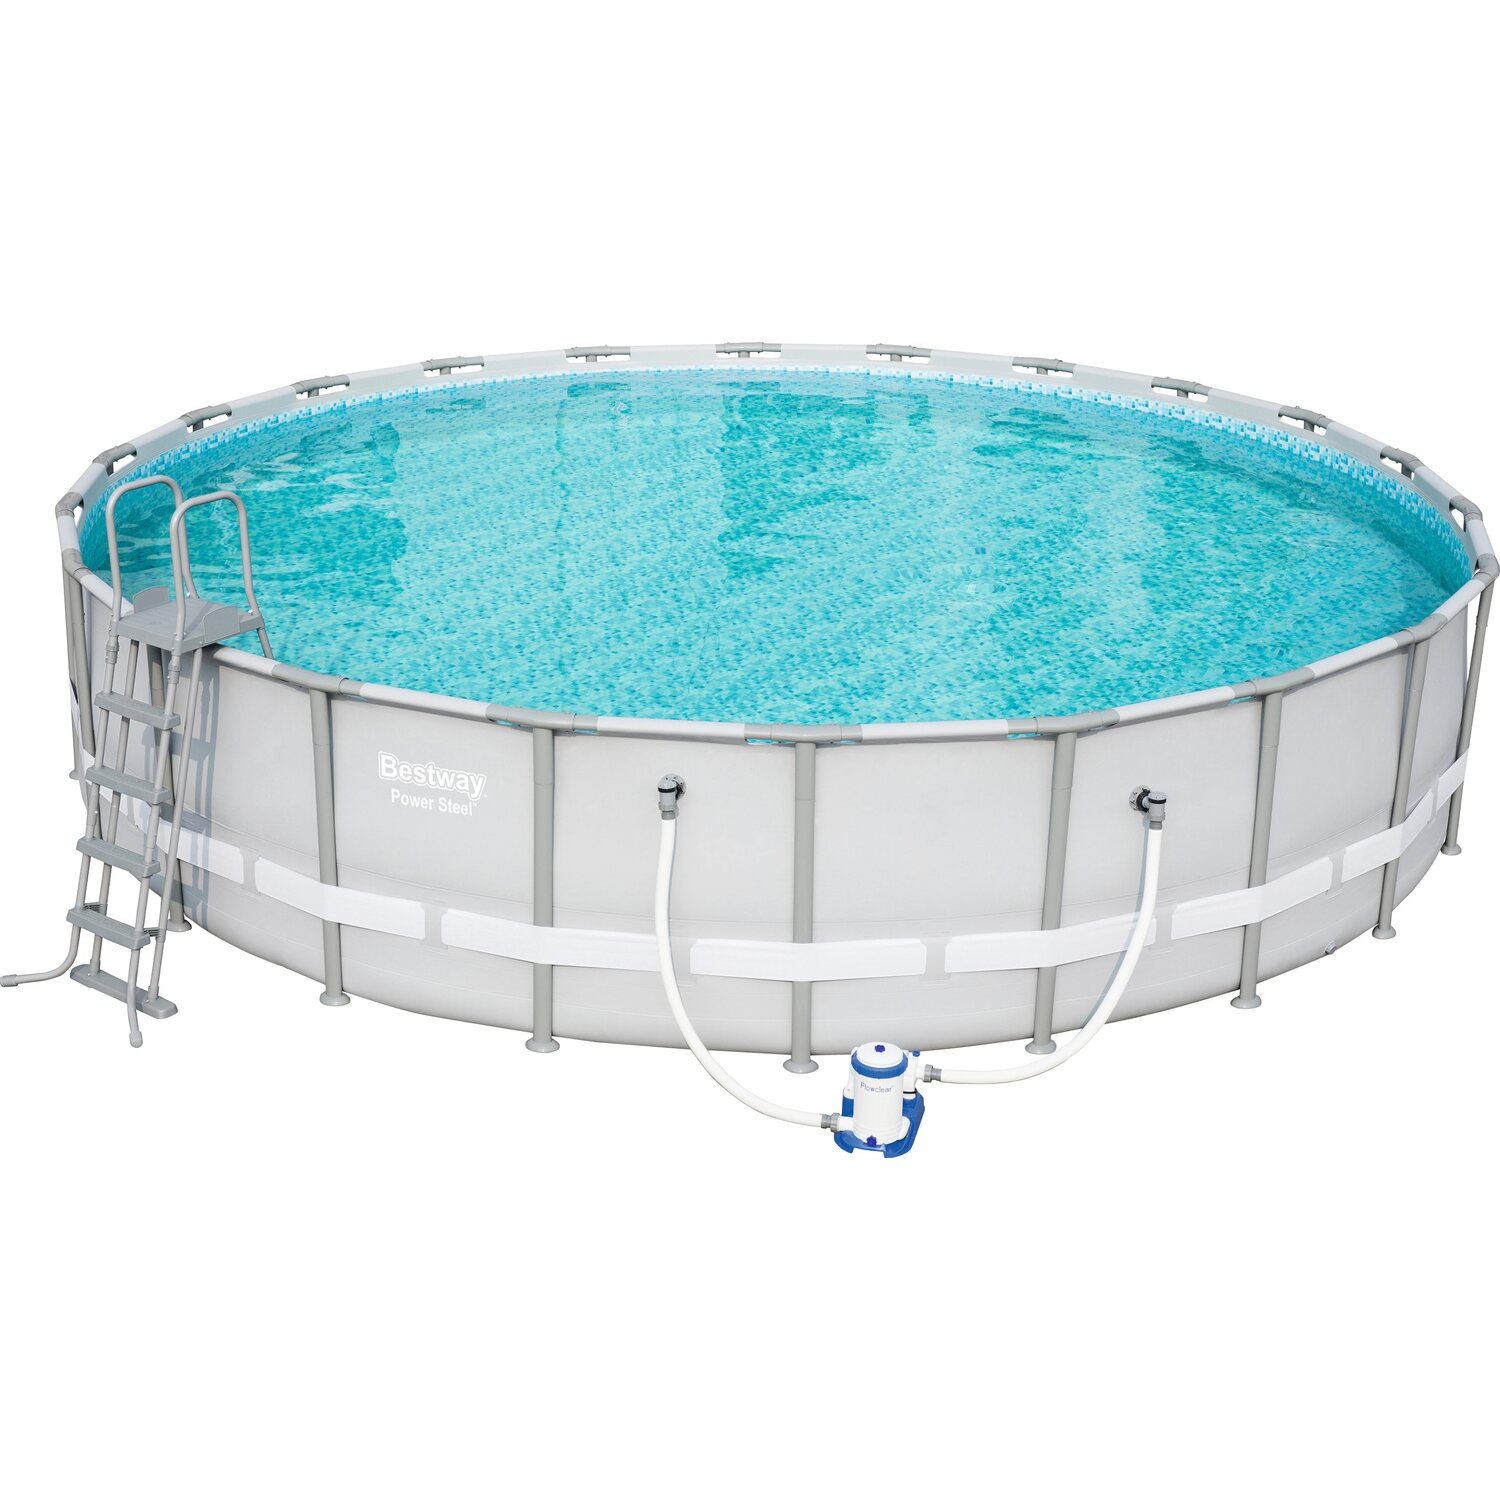 Bestway stahlrahmen pool power komplett set 671 cm x 132 for Bestway pool bei obi